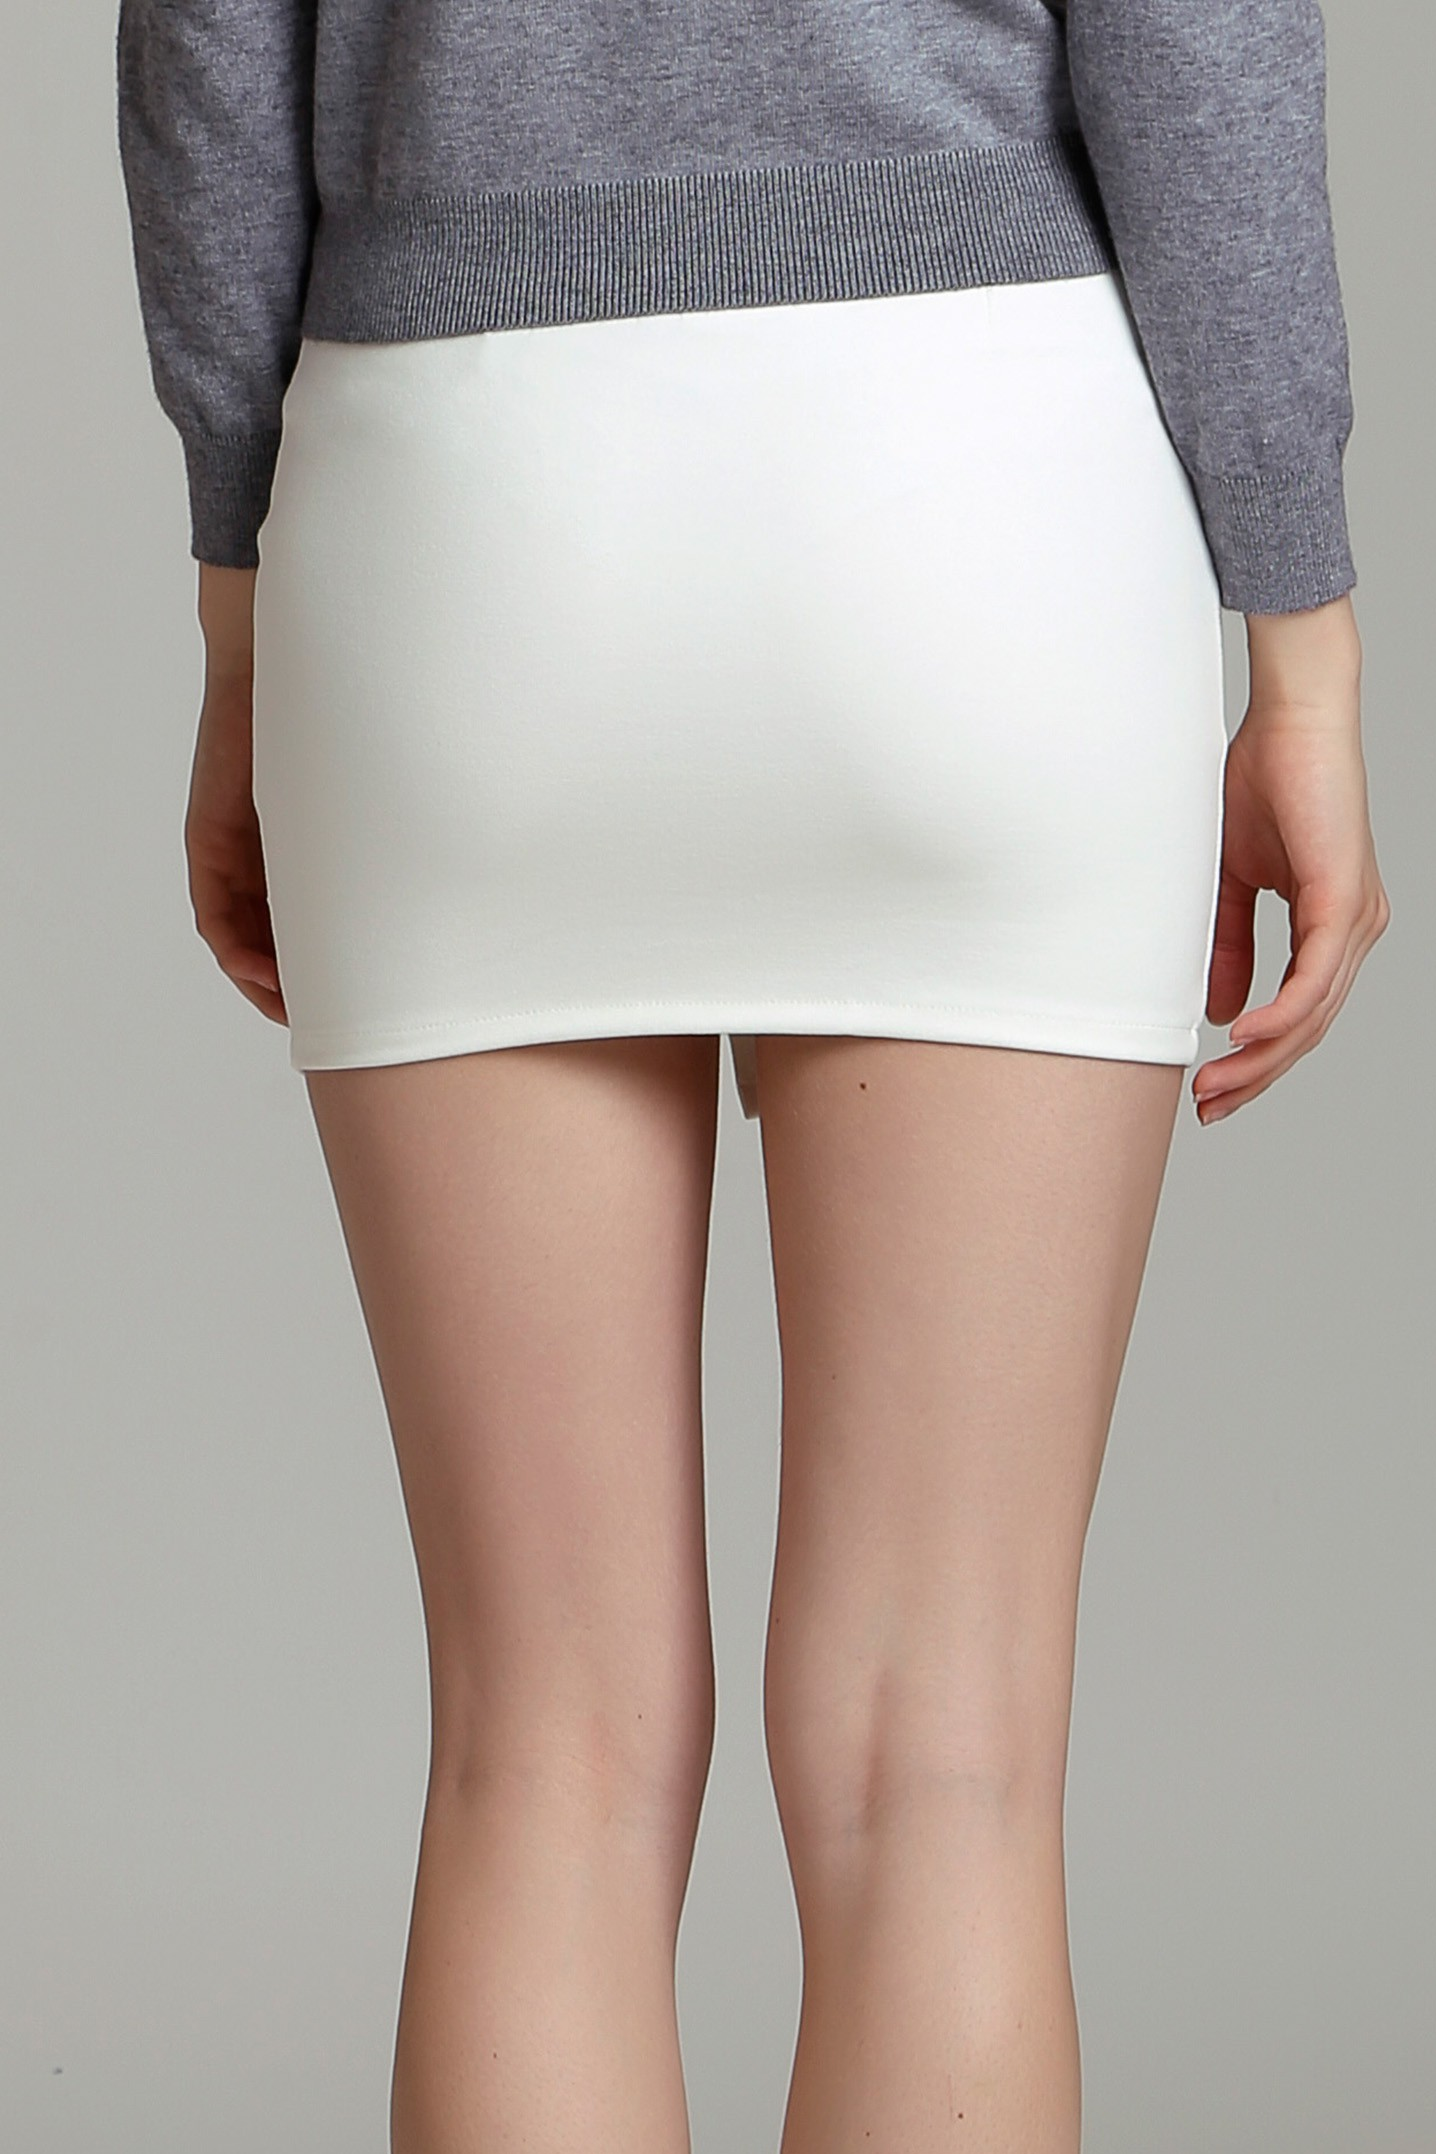 132265699 Diagonal Zipper Mini Skirt - J.Rep Virtual Store